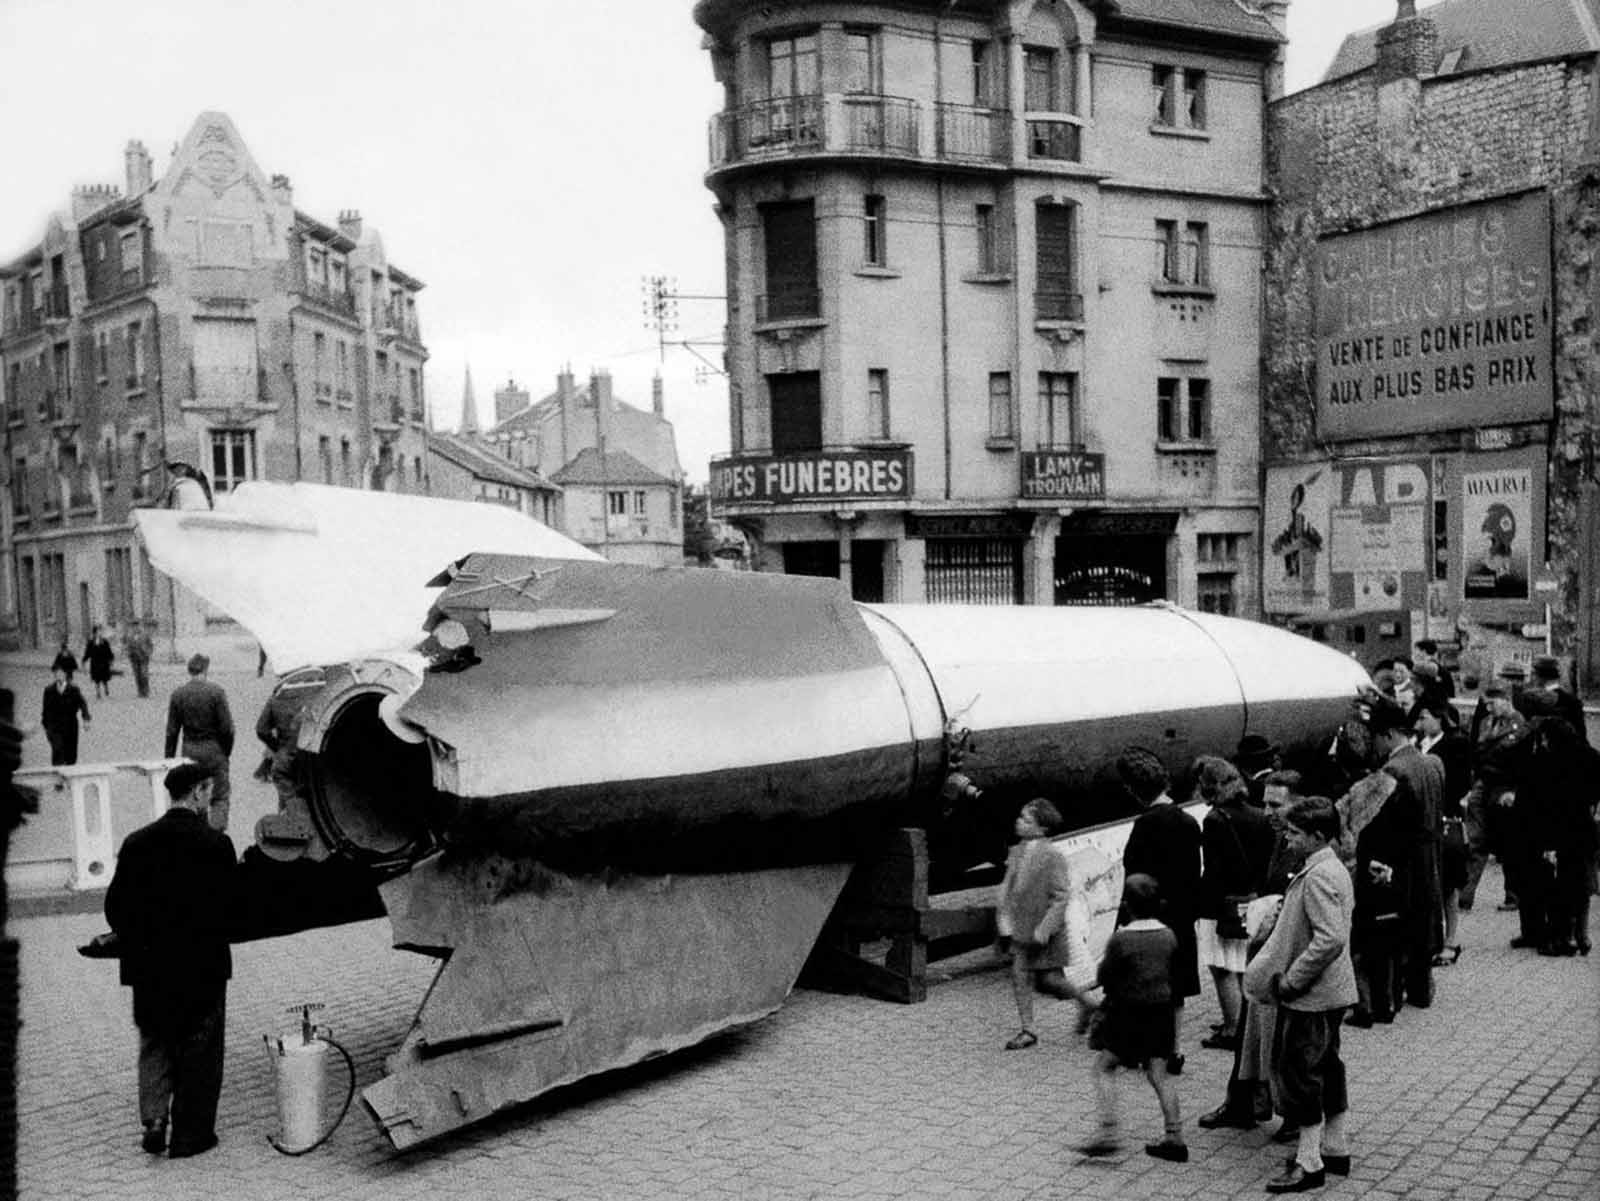 A V-2 rocket on display in Reims, France. 1945.